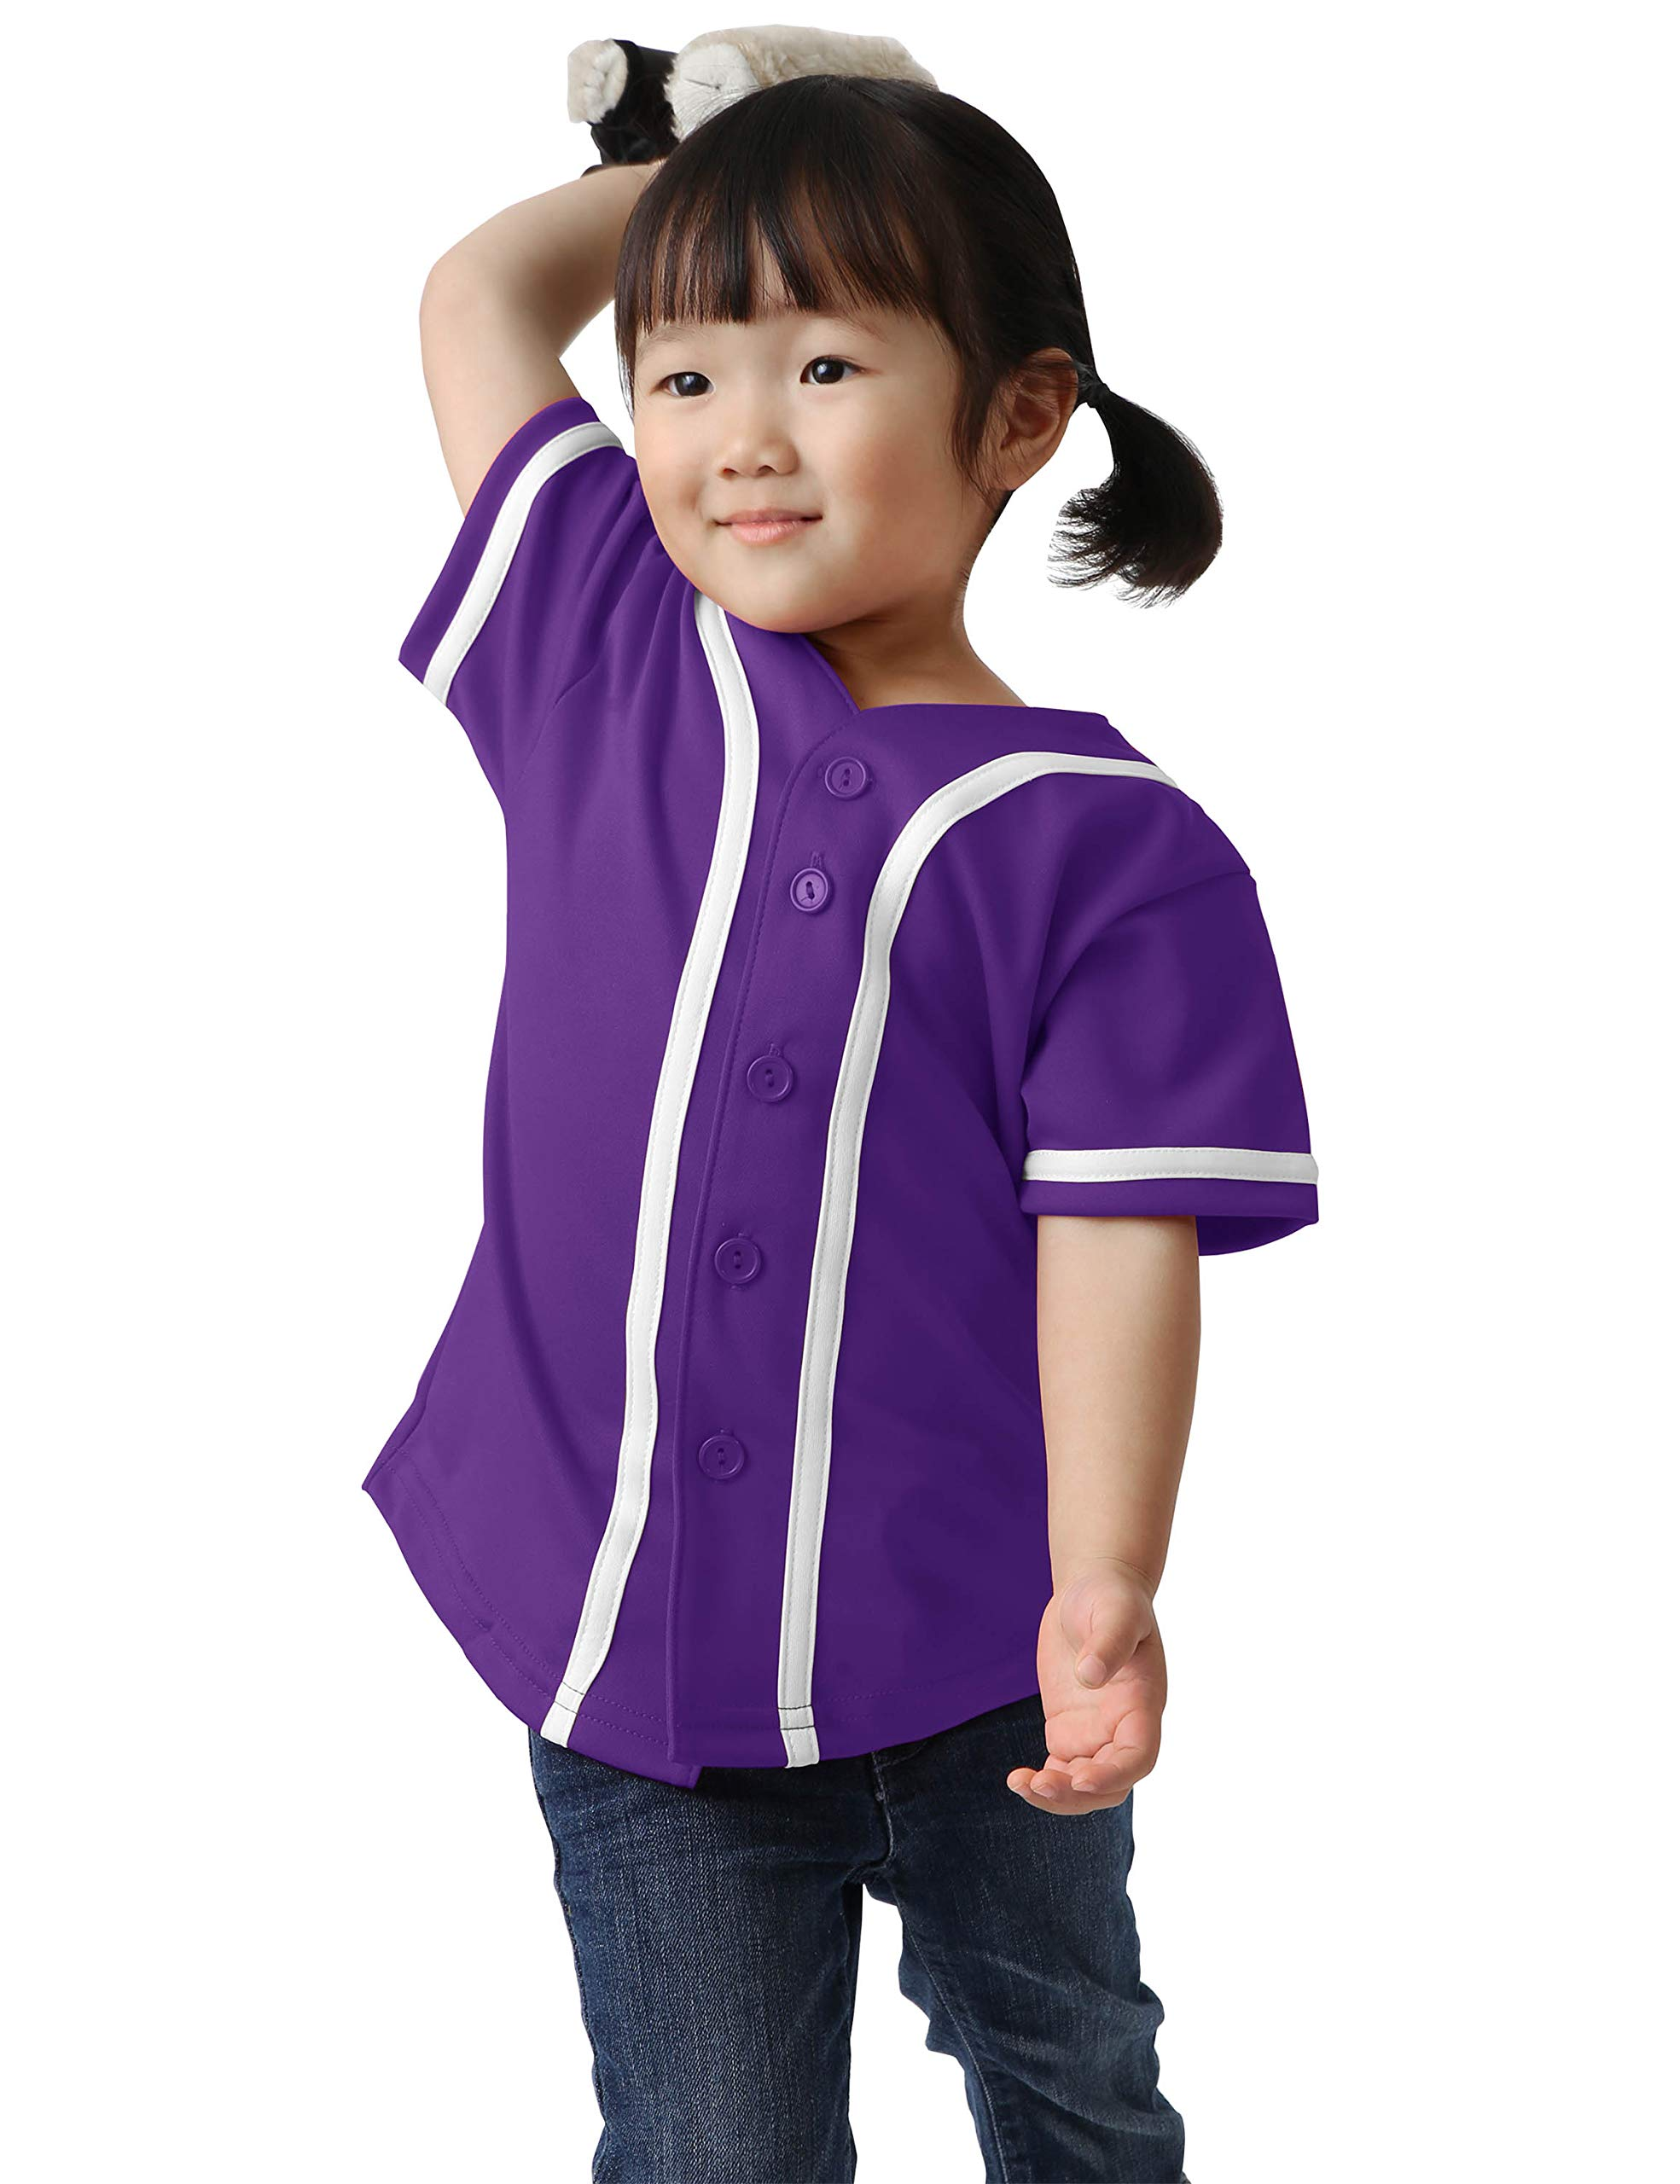 Ma Croix Kids Premium Baseball Jersey Active Button Shirt Team Uniform Little League (3 Toddler, 5up01_pur.WHI) by Ma Croix